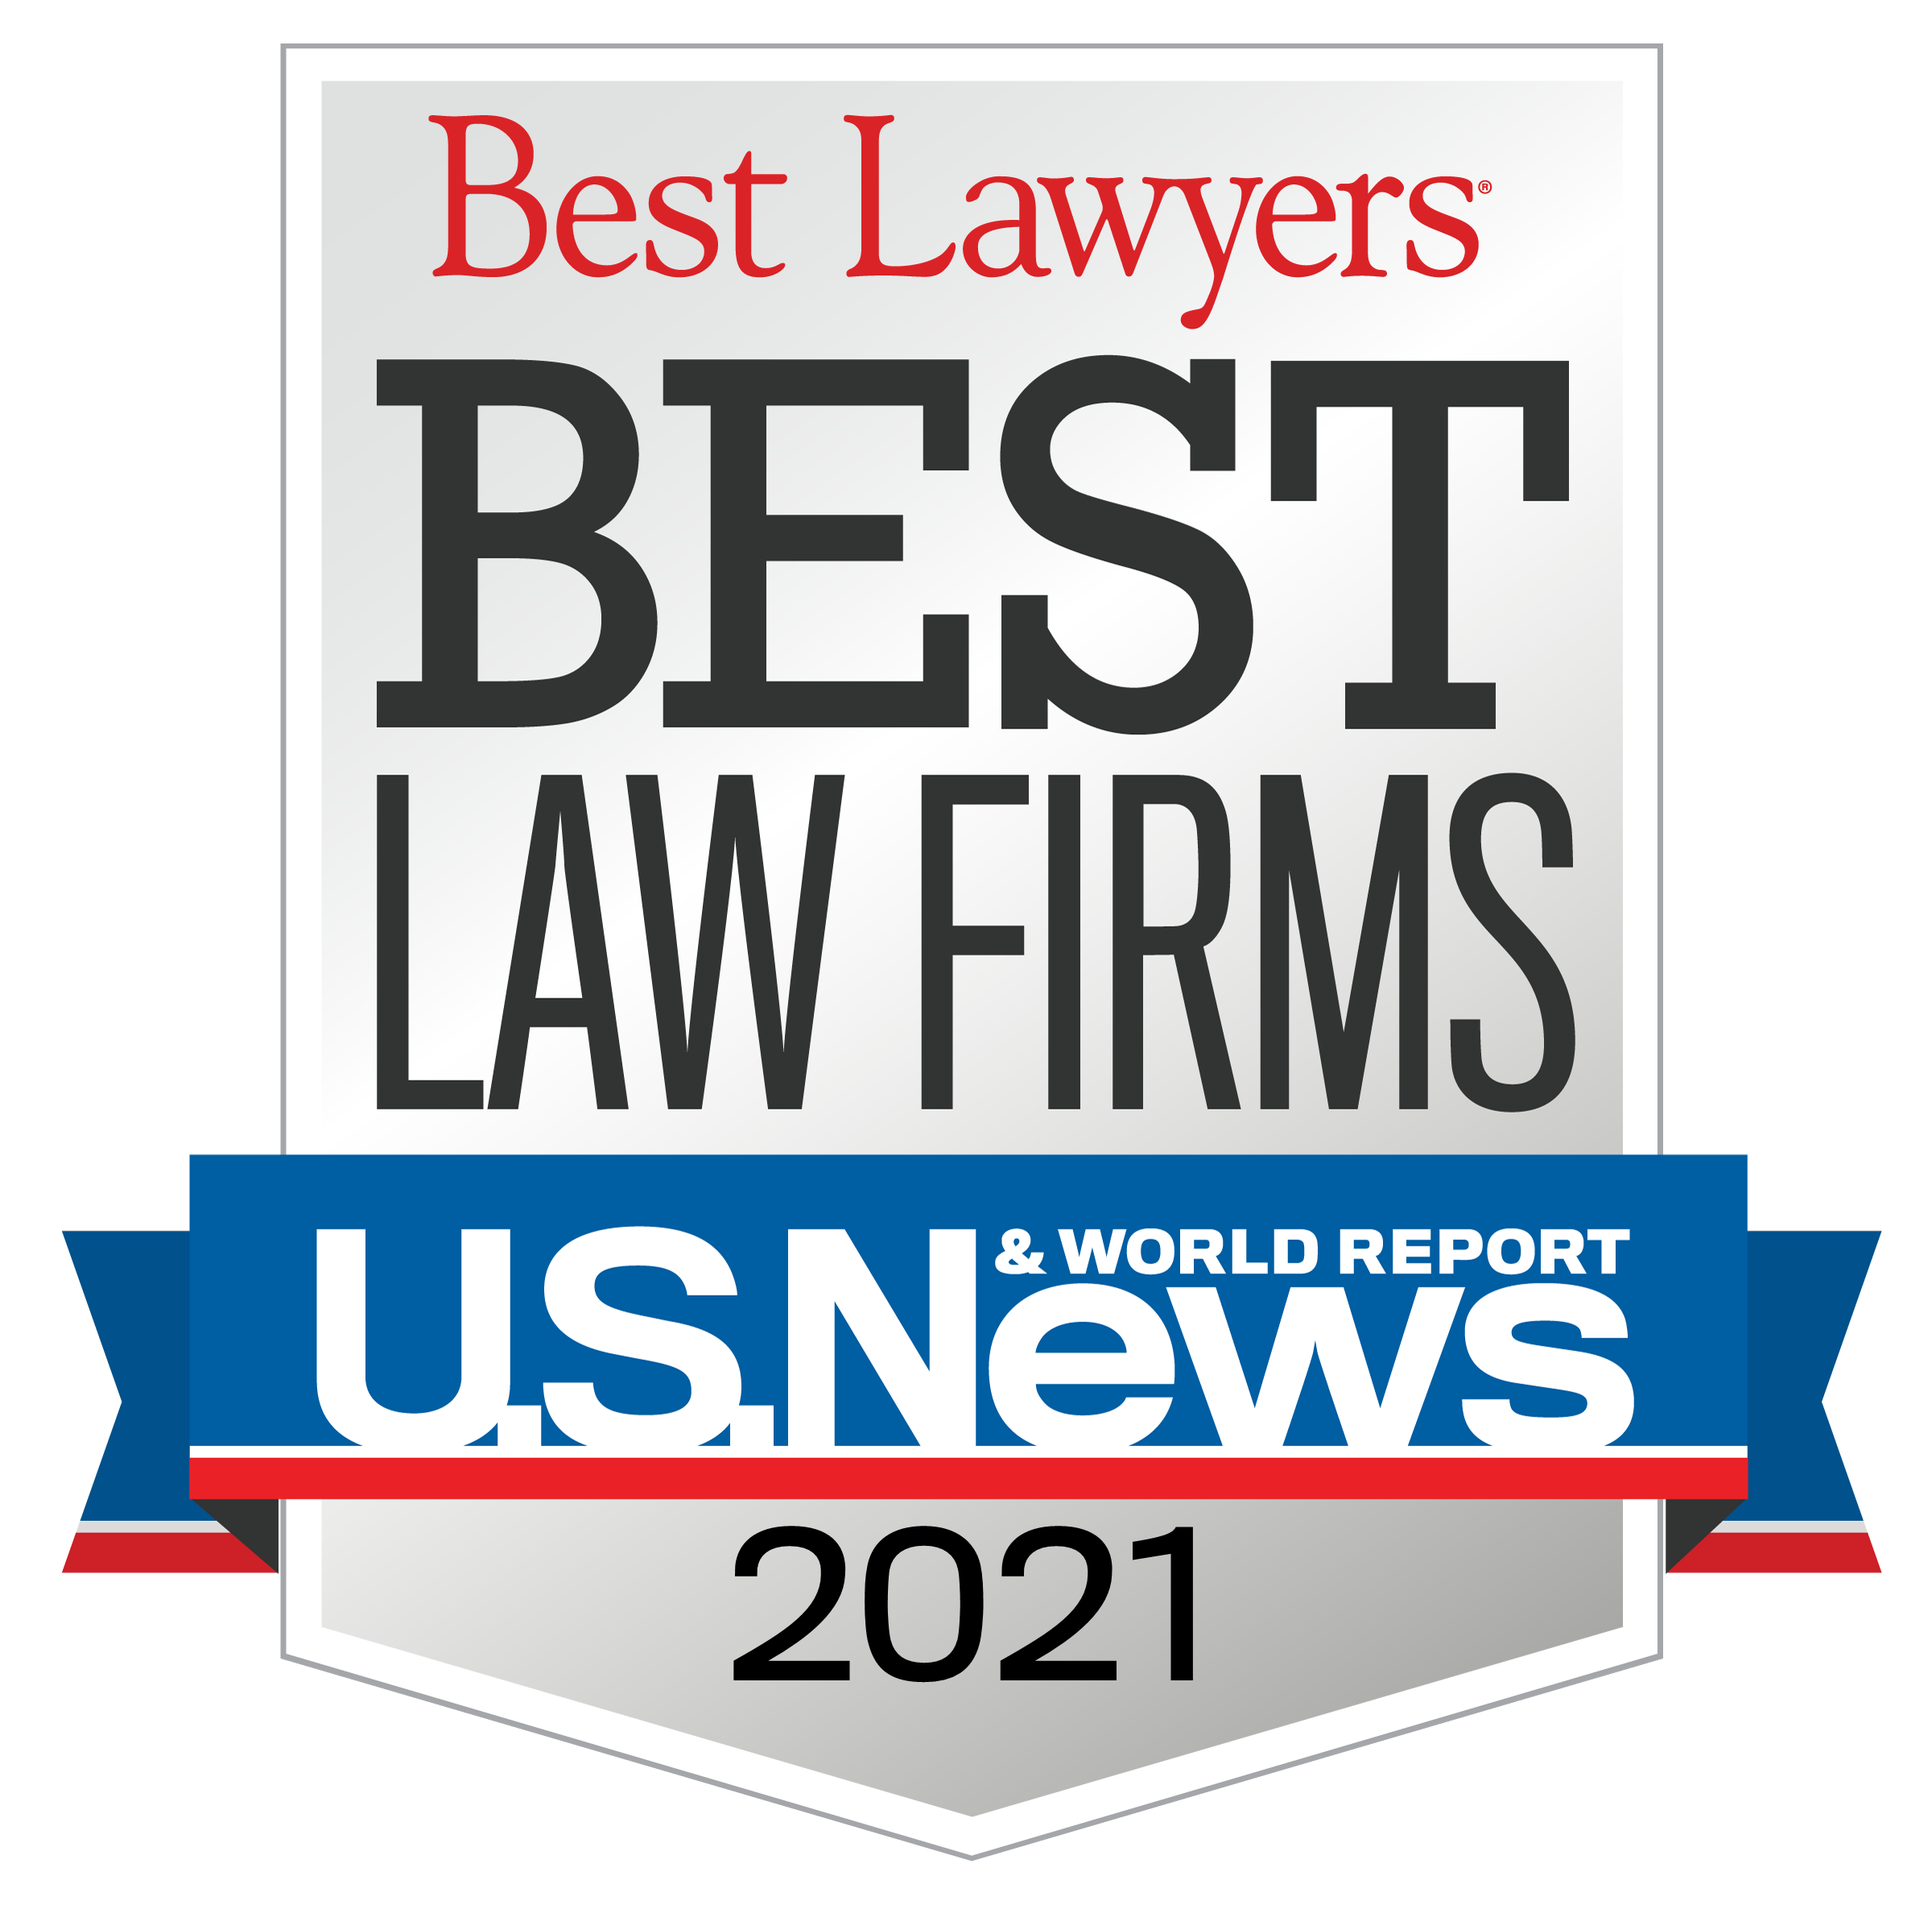 Best Law Firms (US News)